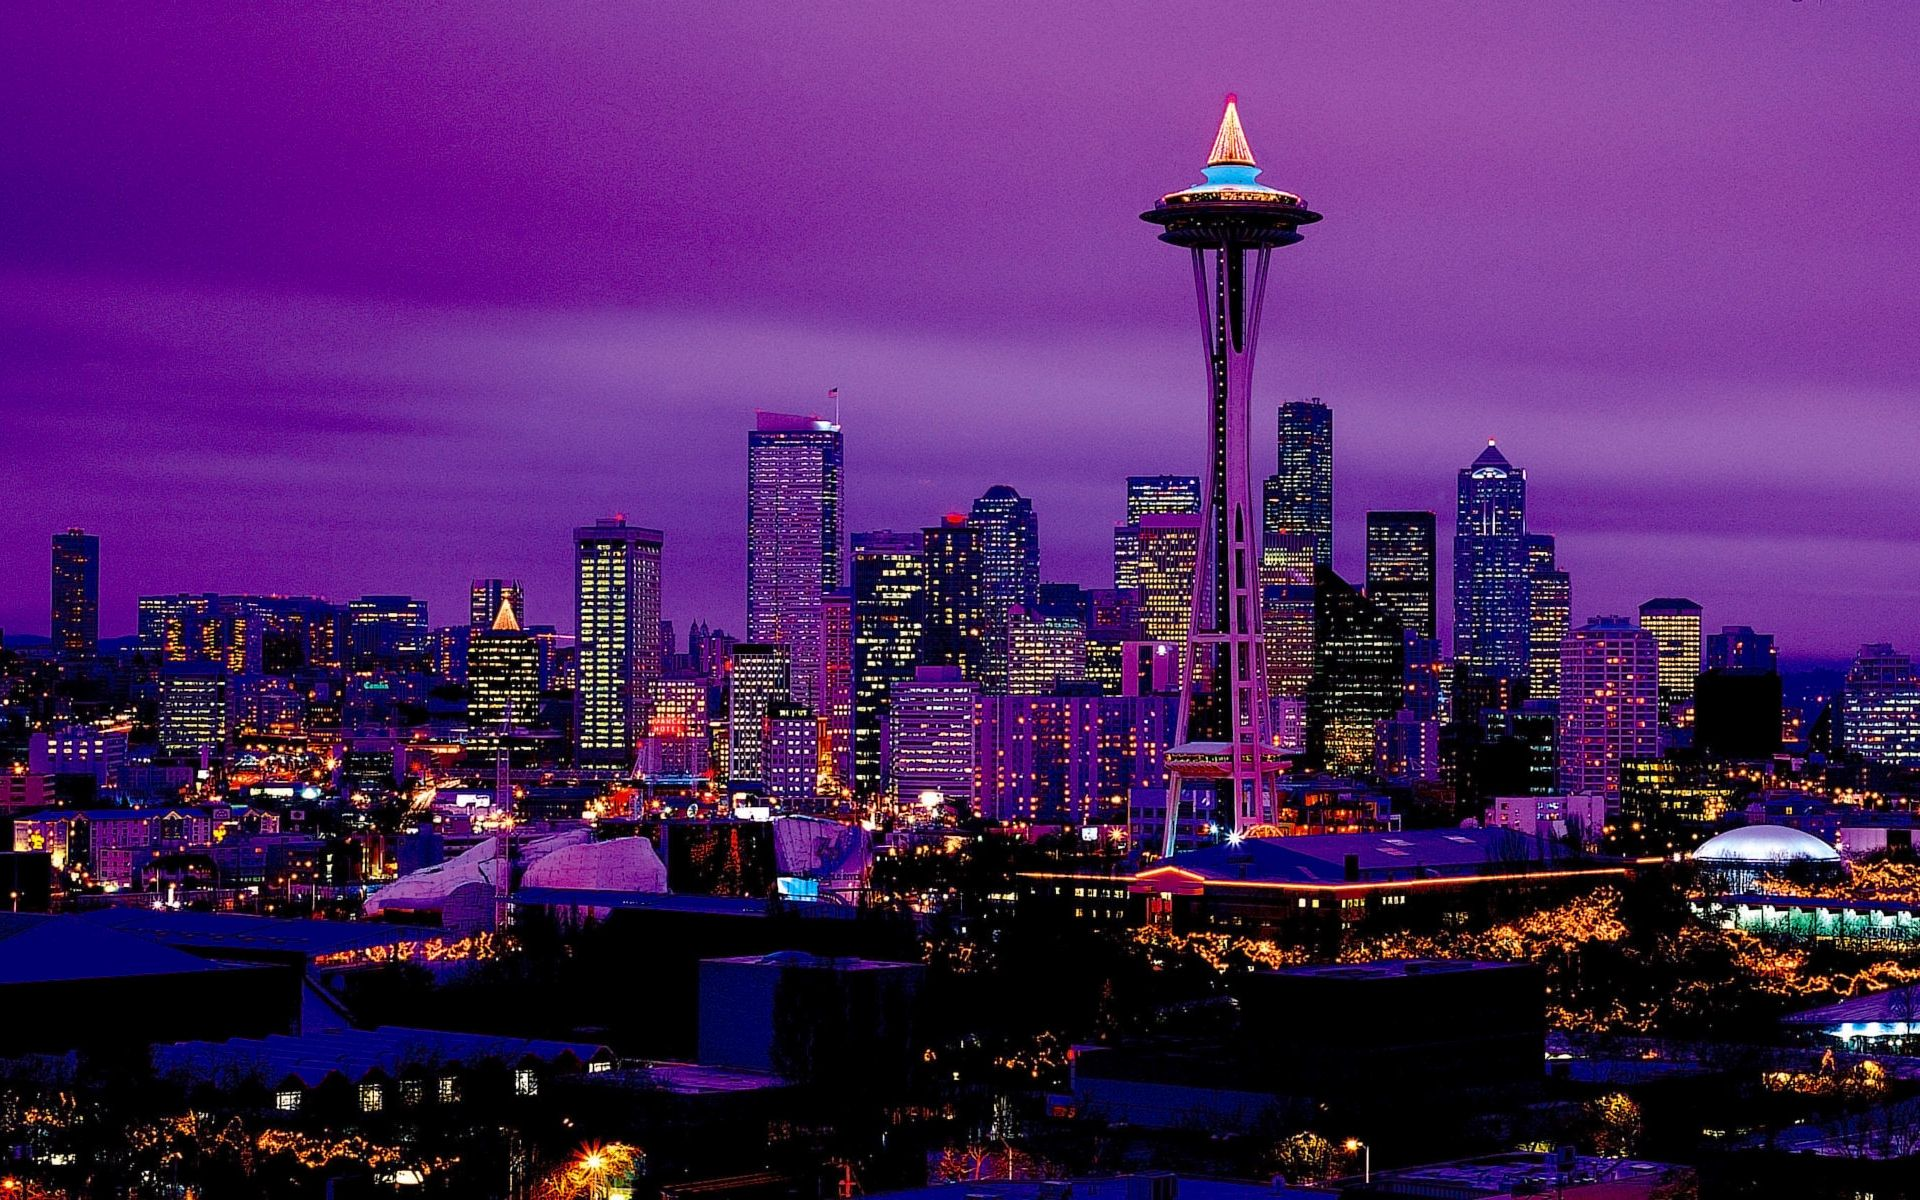 Full HD Wallpapers Night City Lights Wallpapers Pack 3 24 1920x1200